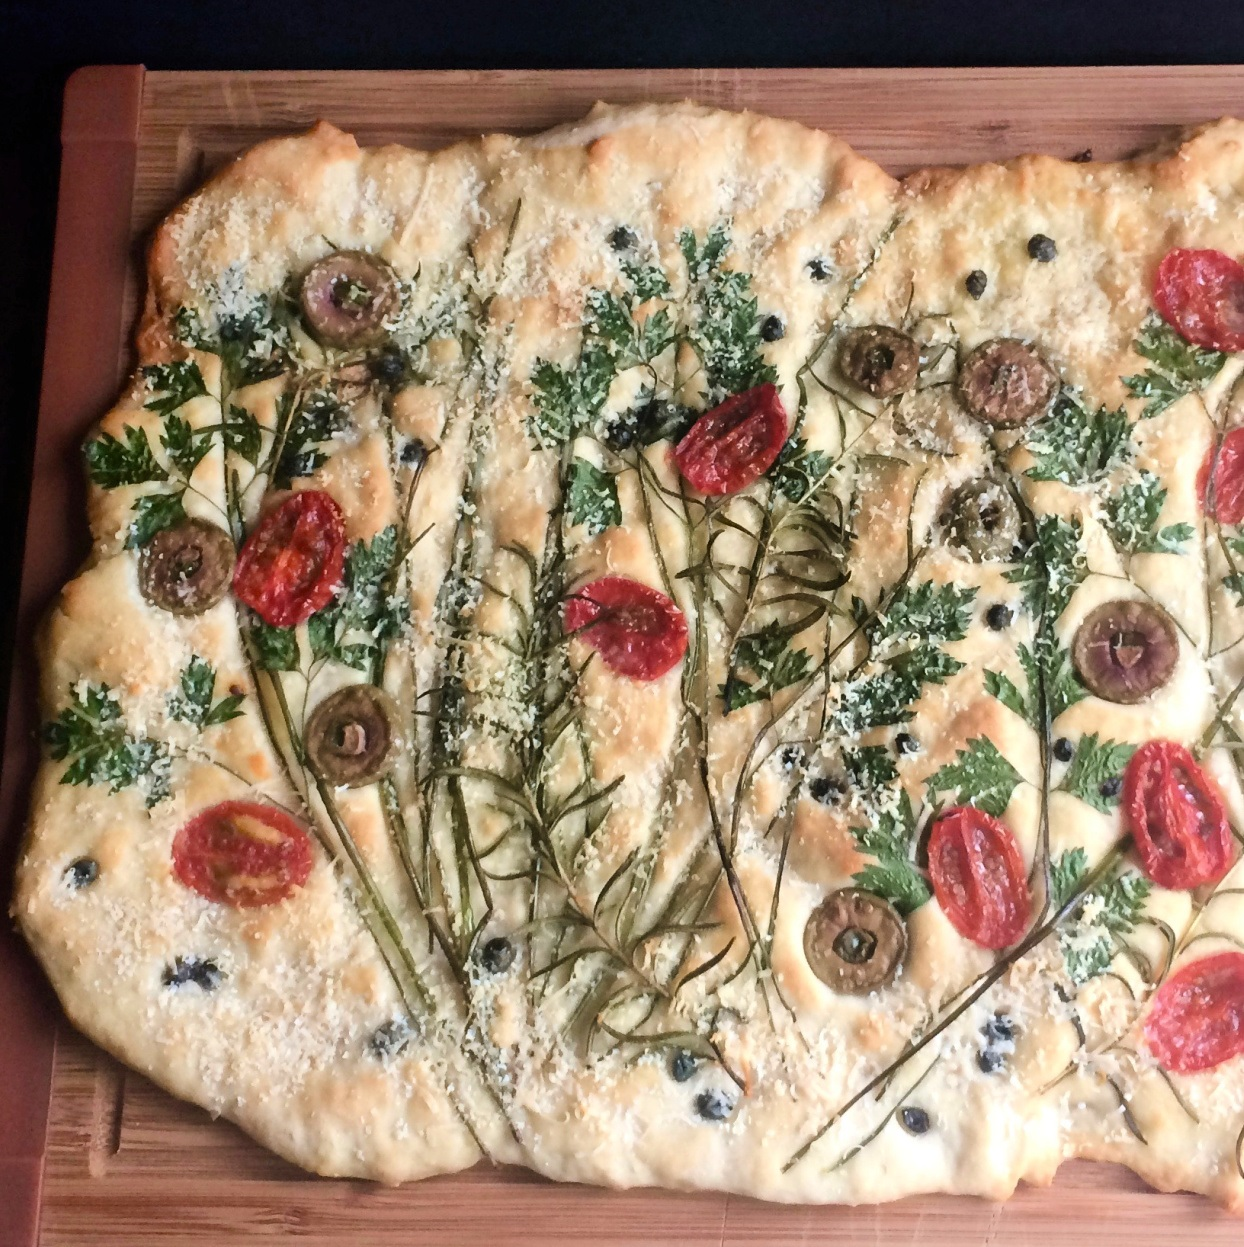 Exquisite yeastless focaccia decorated